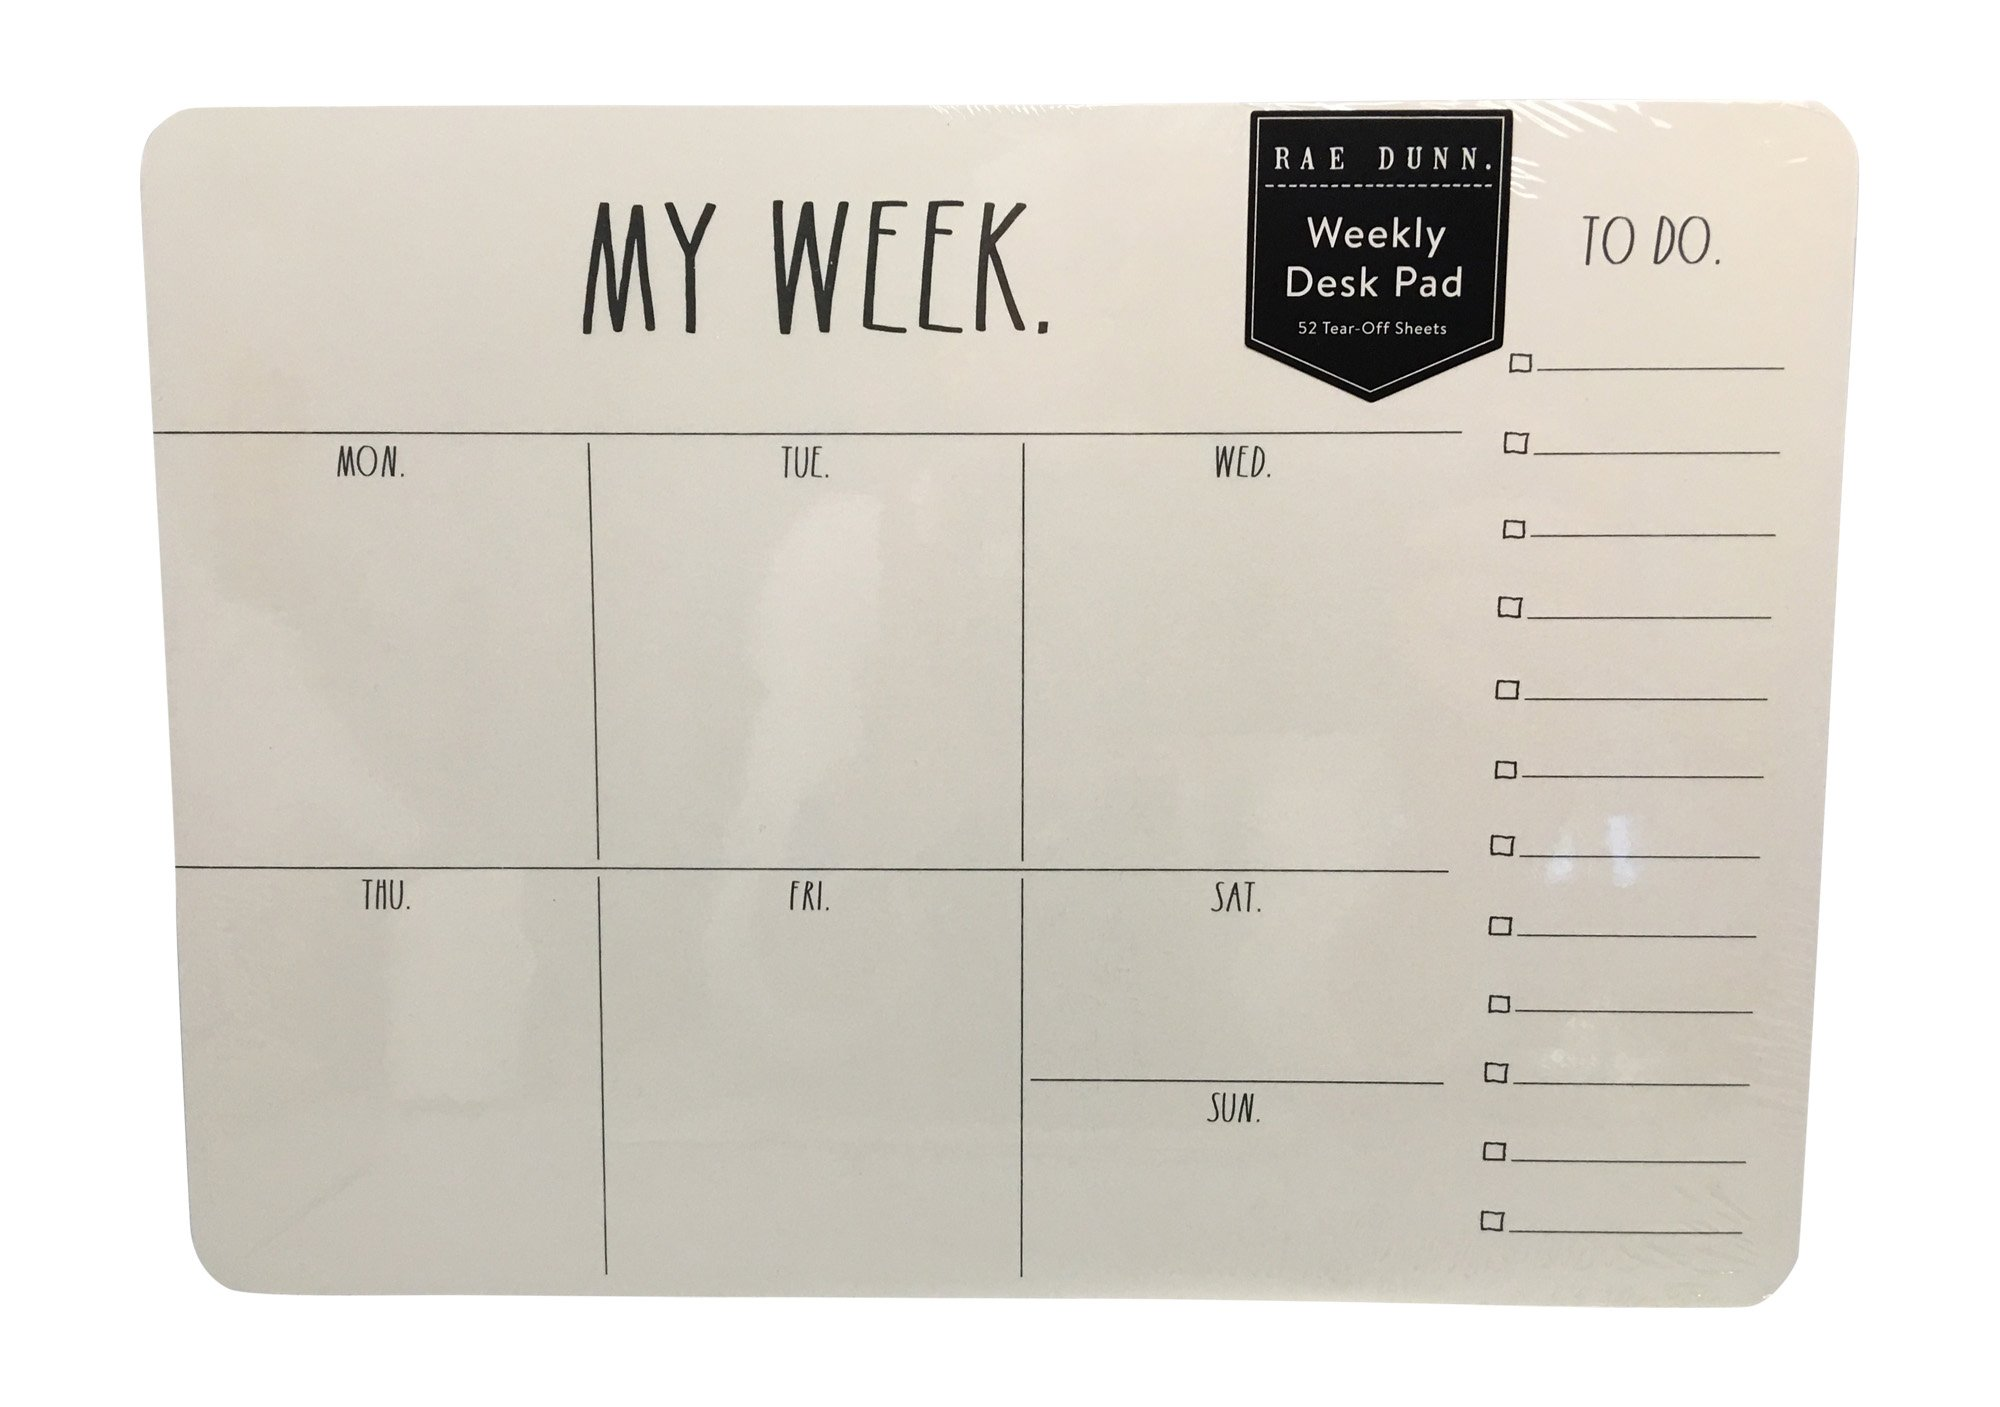 Rae Dunn Weekly Desk Pad - My Week to Do